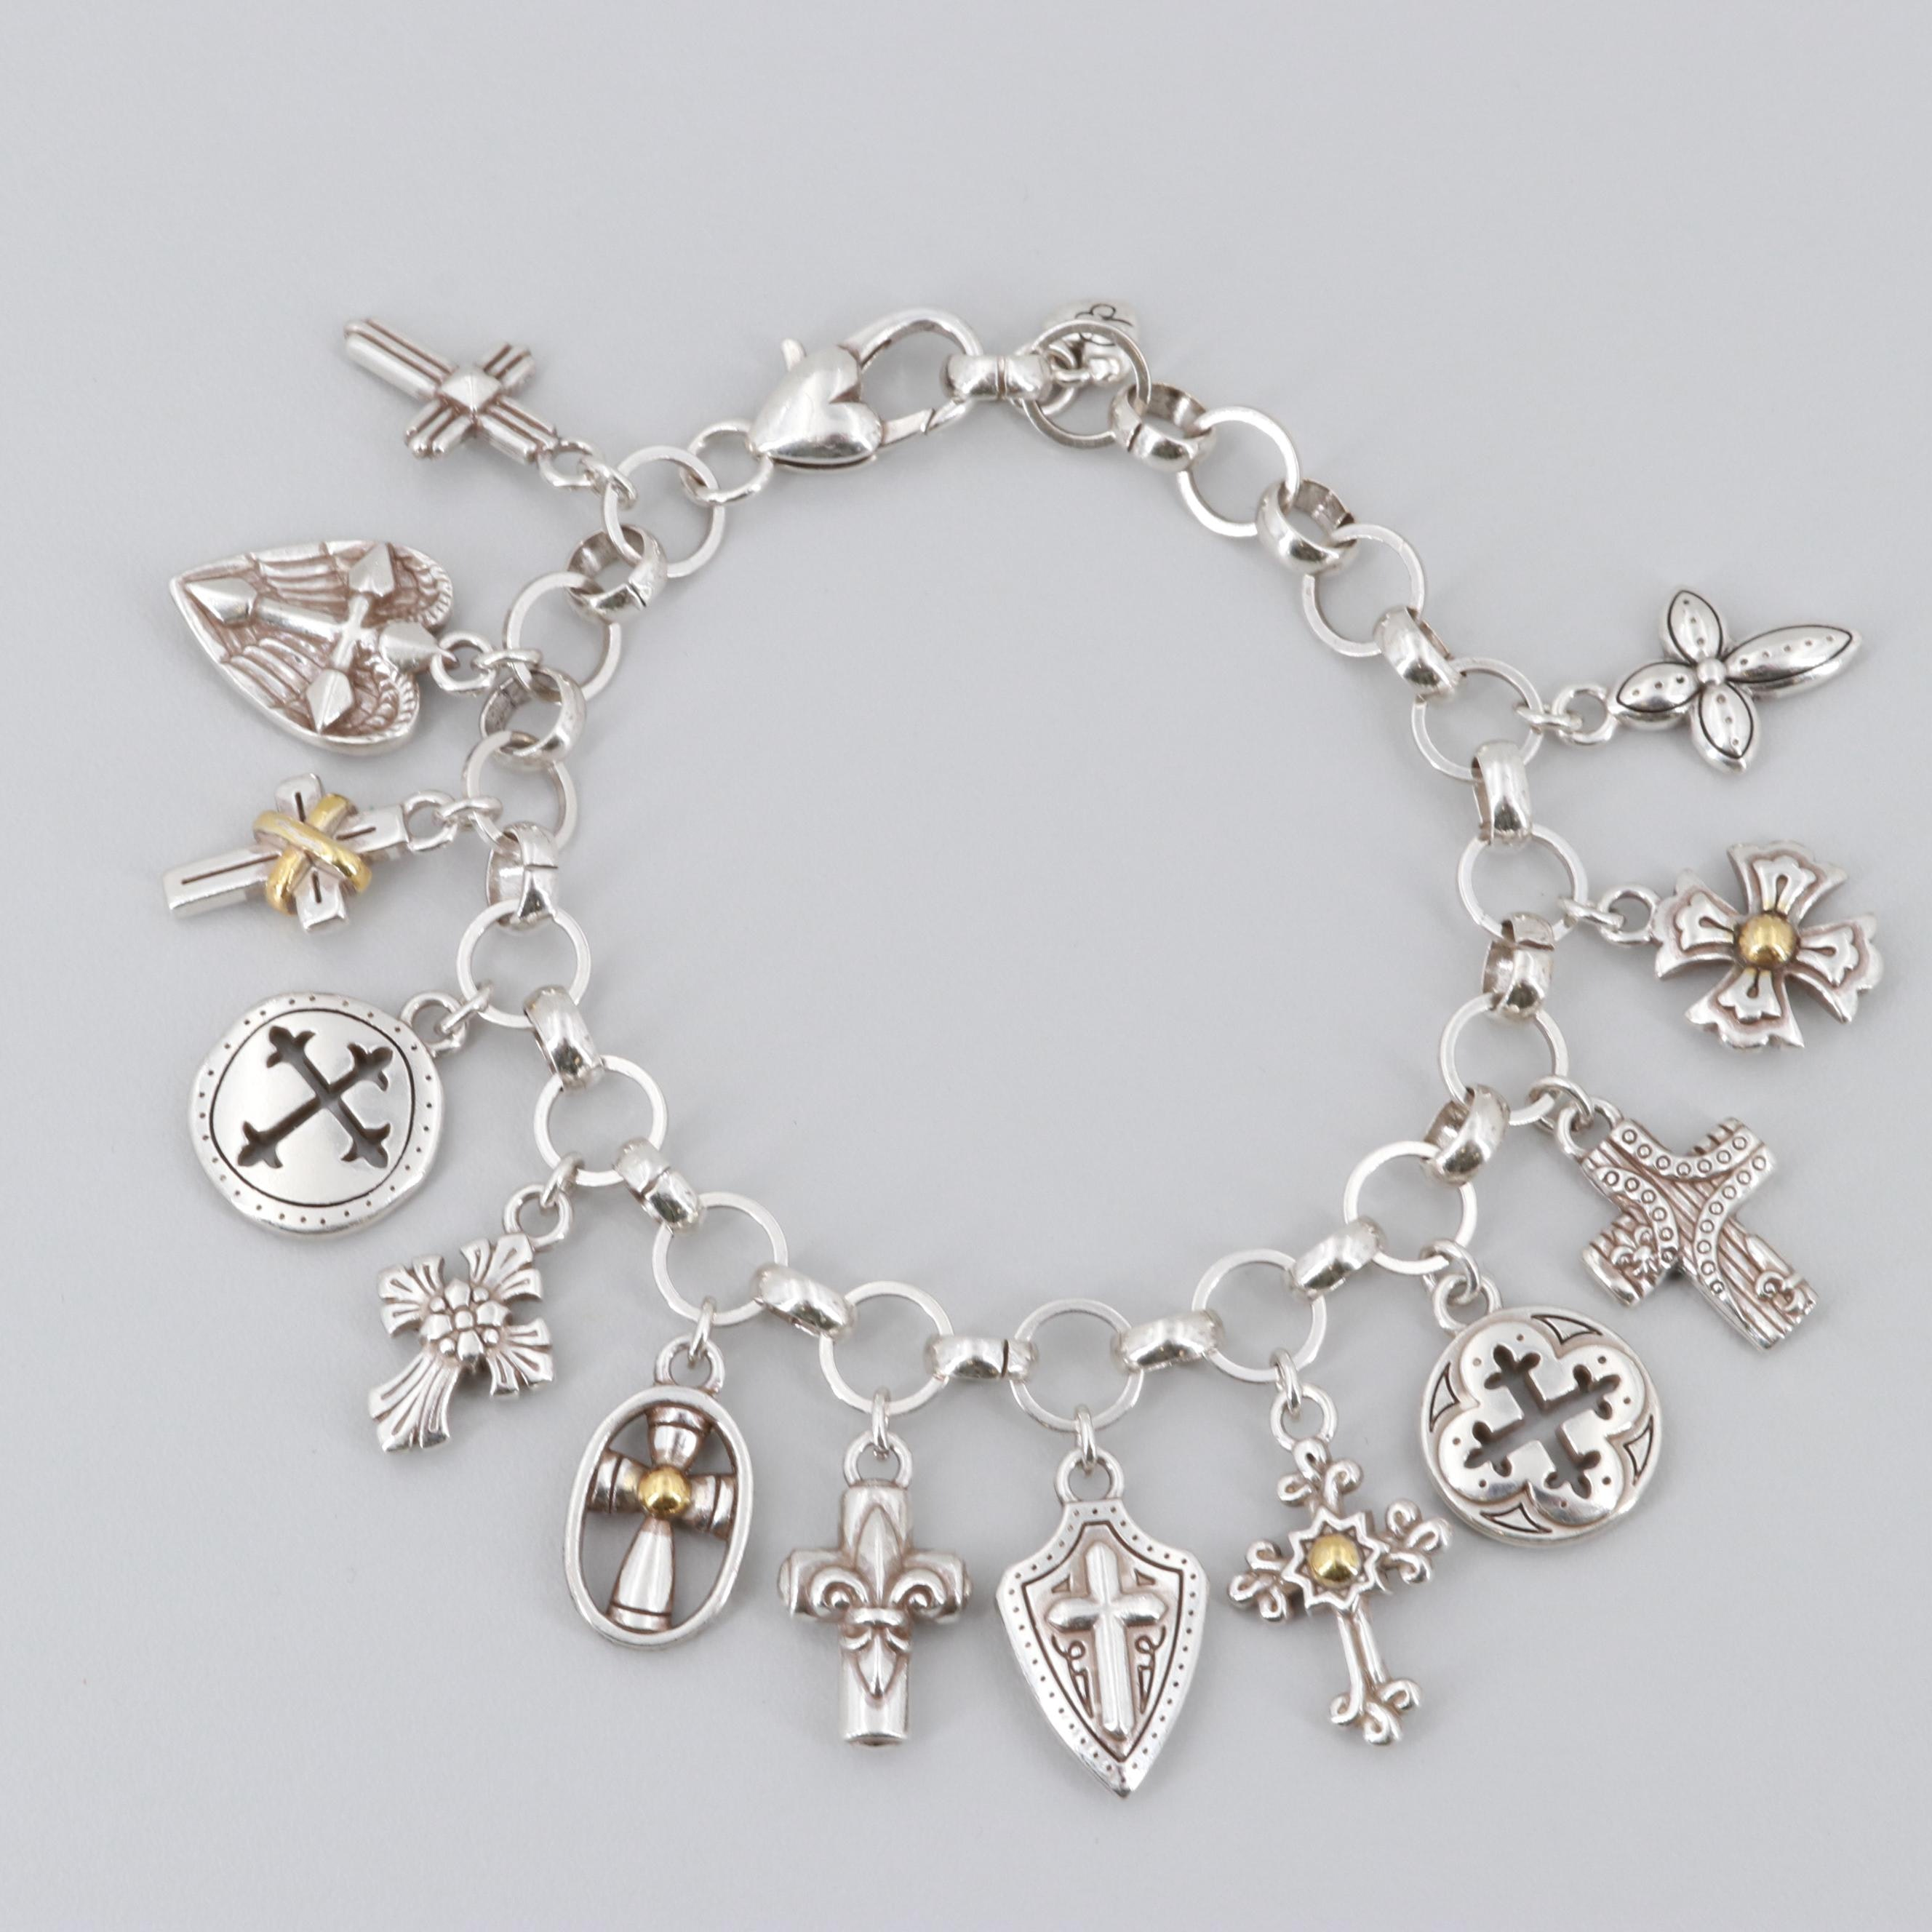 Silver Tone Charm Bracelet with Gold Tone Accents